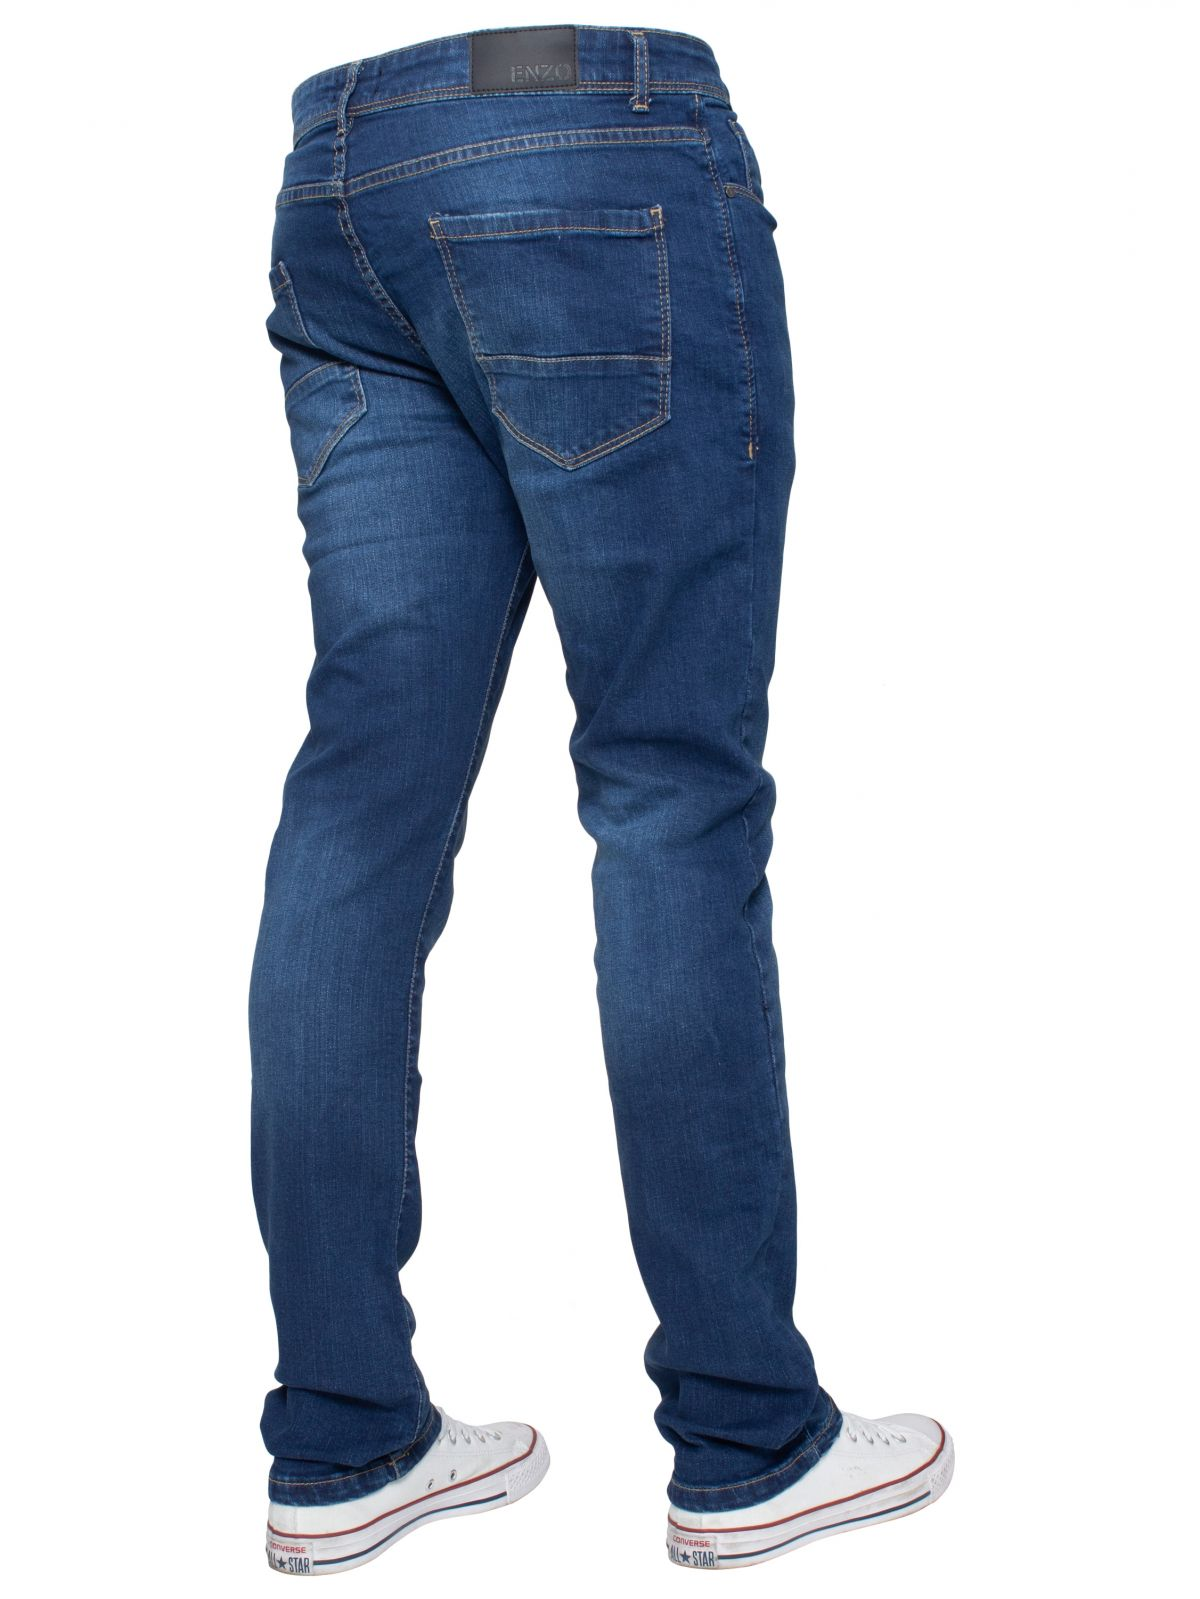 Mens Slim Stretch Mid Stonewash Denim Jeans | Enzo Designer Menswear